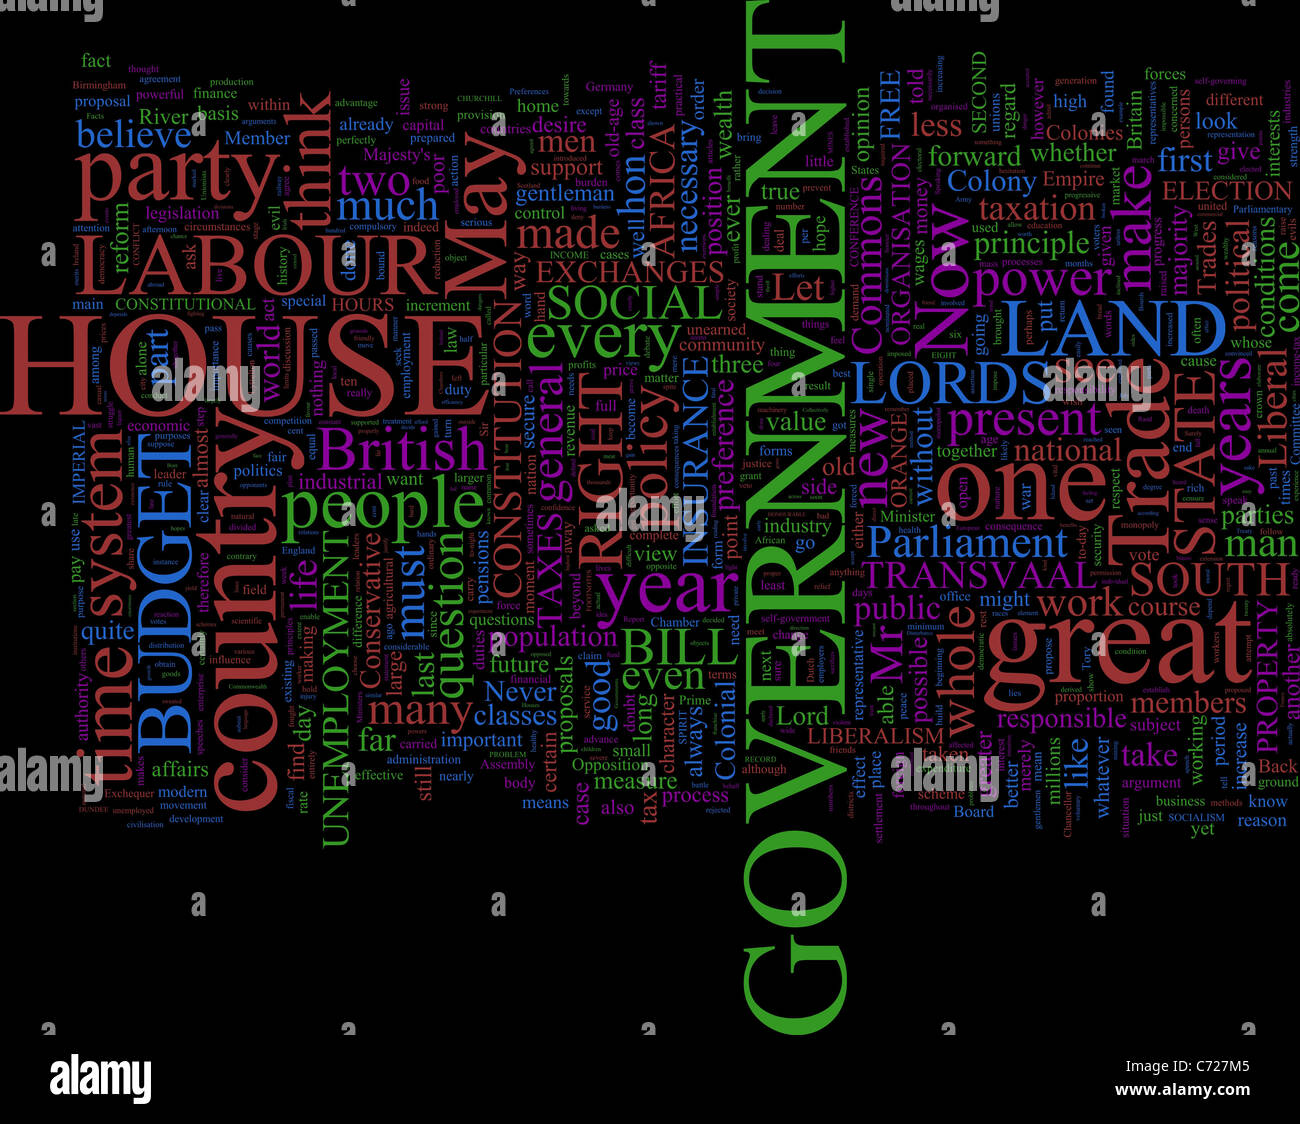 A word cloud based on Sir Winston Churchill's writings - Stock Image